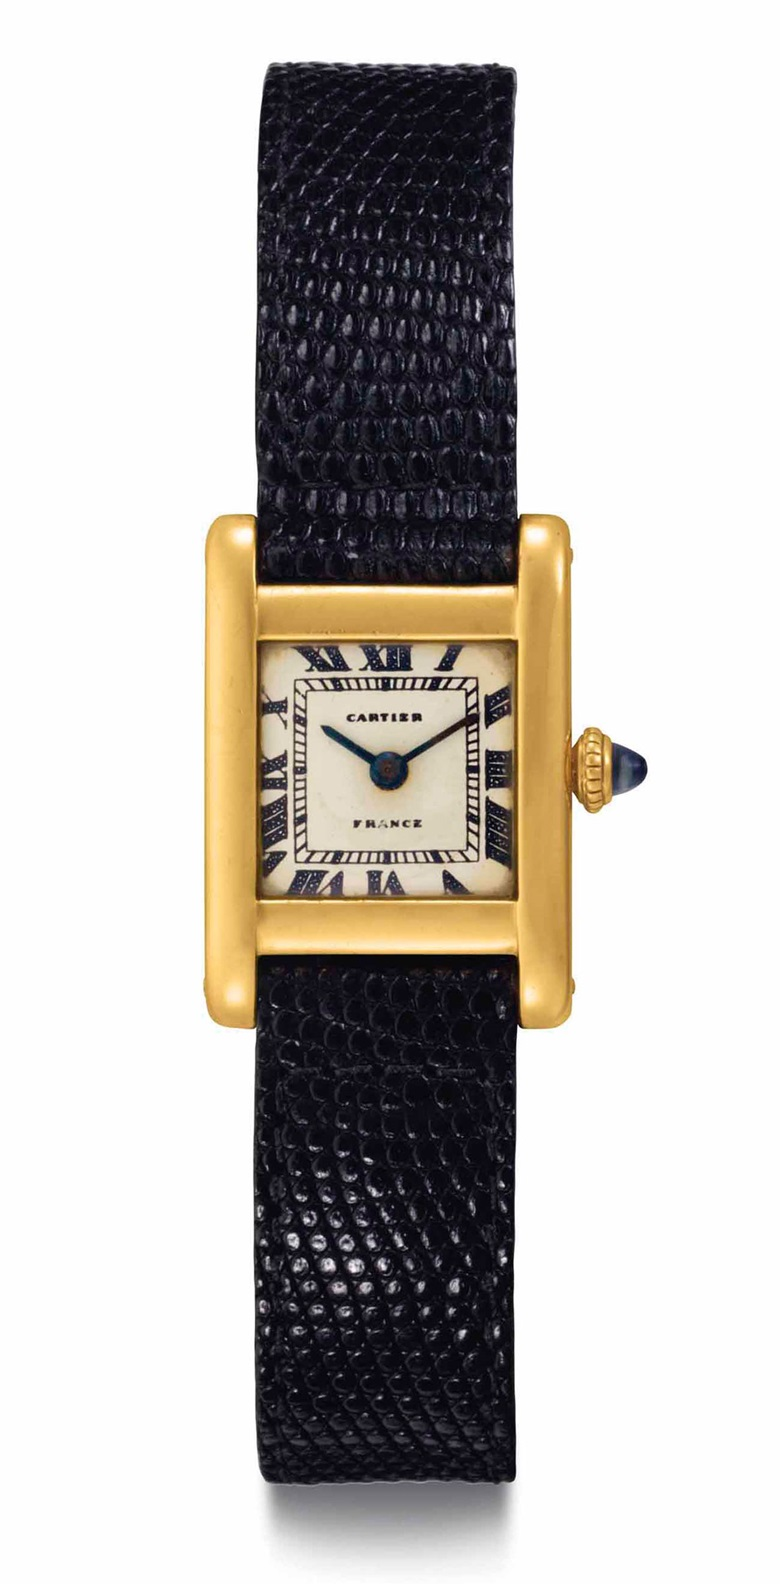 Cartier. A fine and historically important 18k gold square-shaped wristwatch, belonging to Jacqueline Kennedy Onassis. Signed Cartier, Tank model, movement no. 2117860, case no. 44374, manufactured in 1962, accompanied by an original painting by Jacqueline Kennedy Onassis. Sold for $379,500 on 21 June 2017  at Christie's in New York